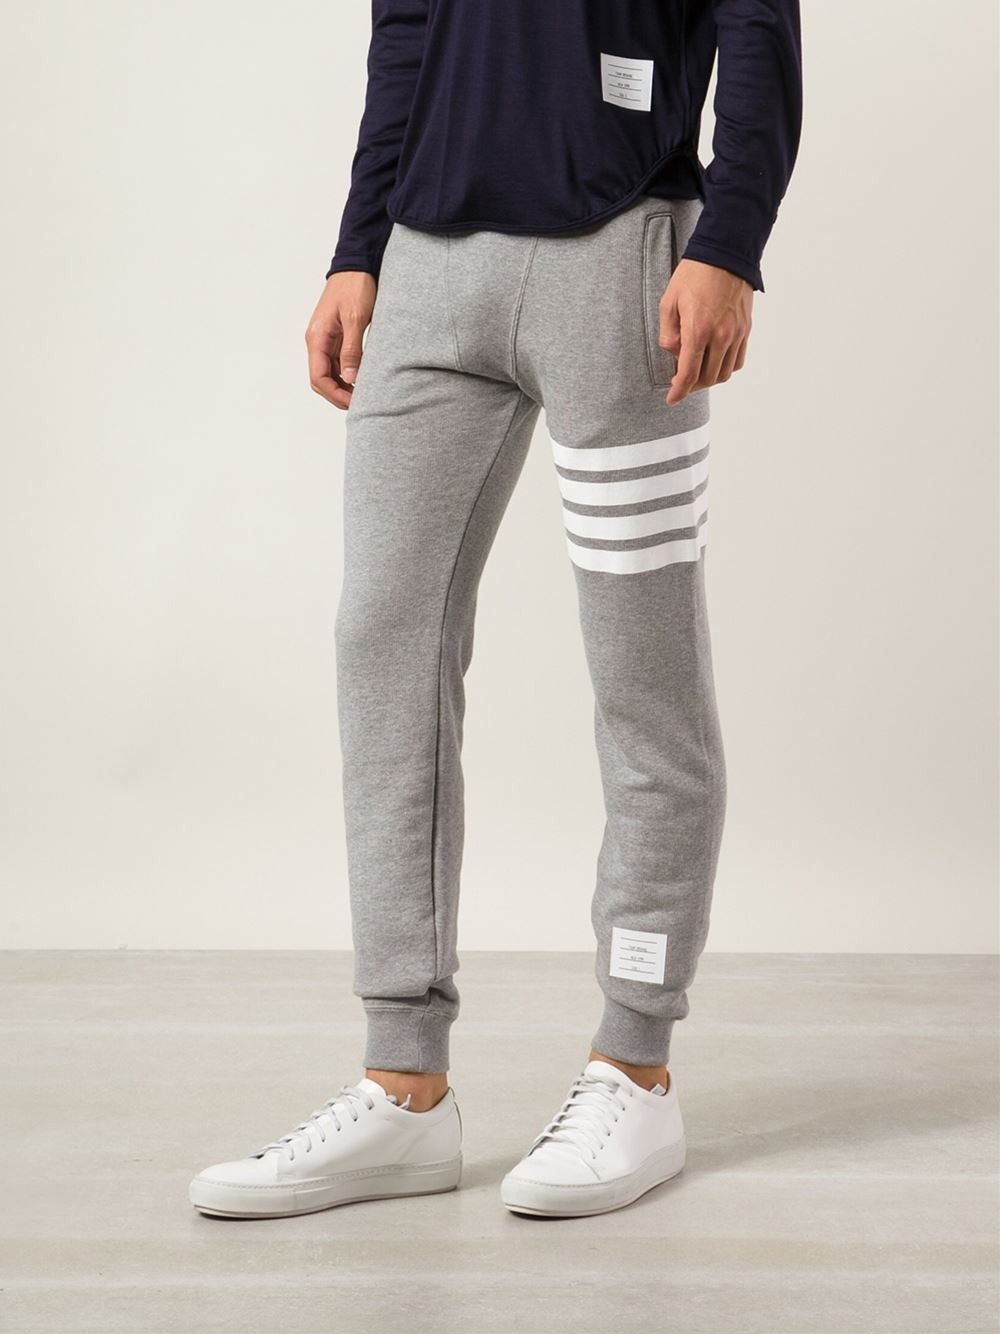 Thom browne Athletic Sweatpants in Gray for Men